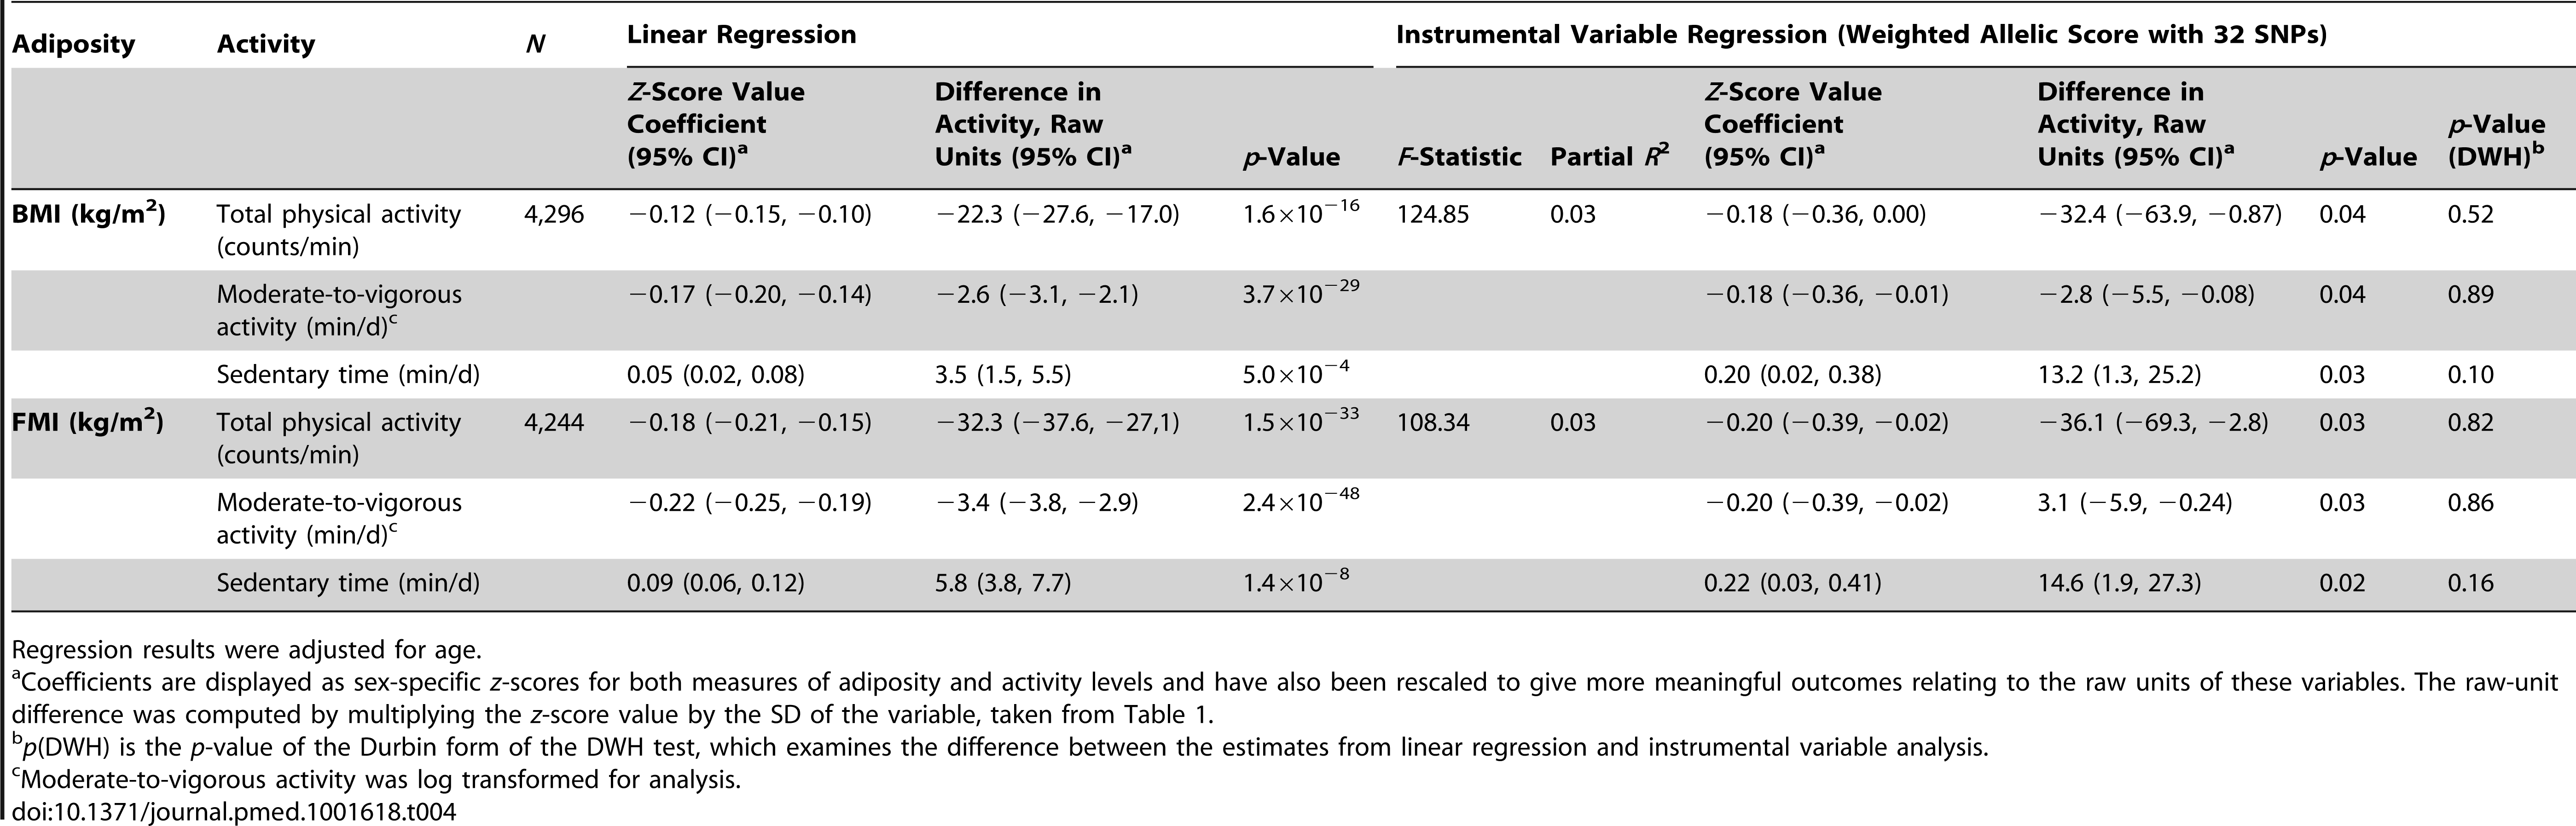 Associations between body mass index/fat mass index and activity levels as tested both by conventional epidemiological approaches and through the application of instrumental variable analysis using a 32-SNP weighted allelic score as an instrument.